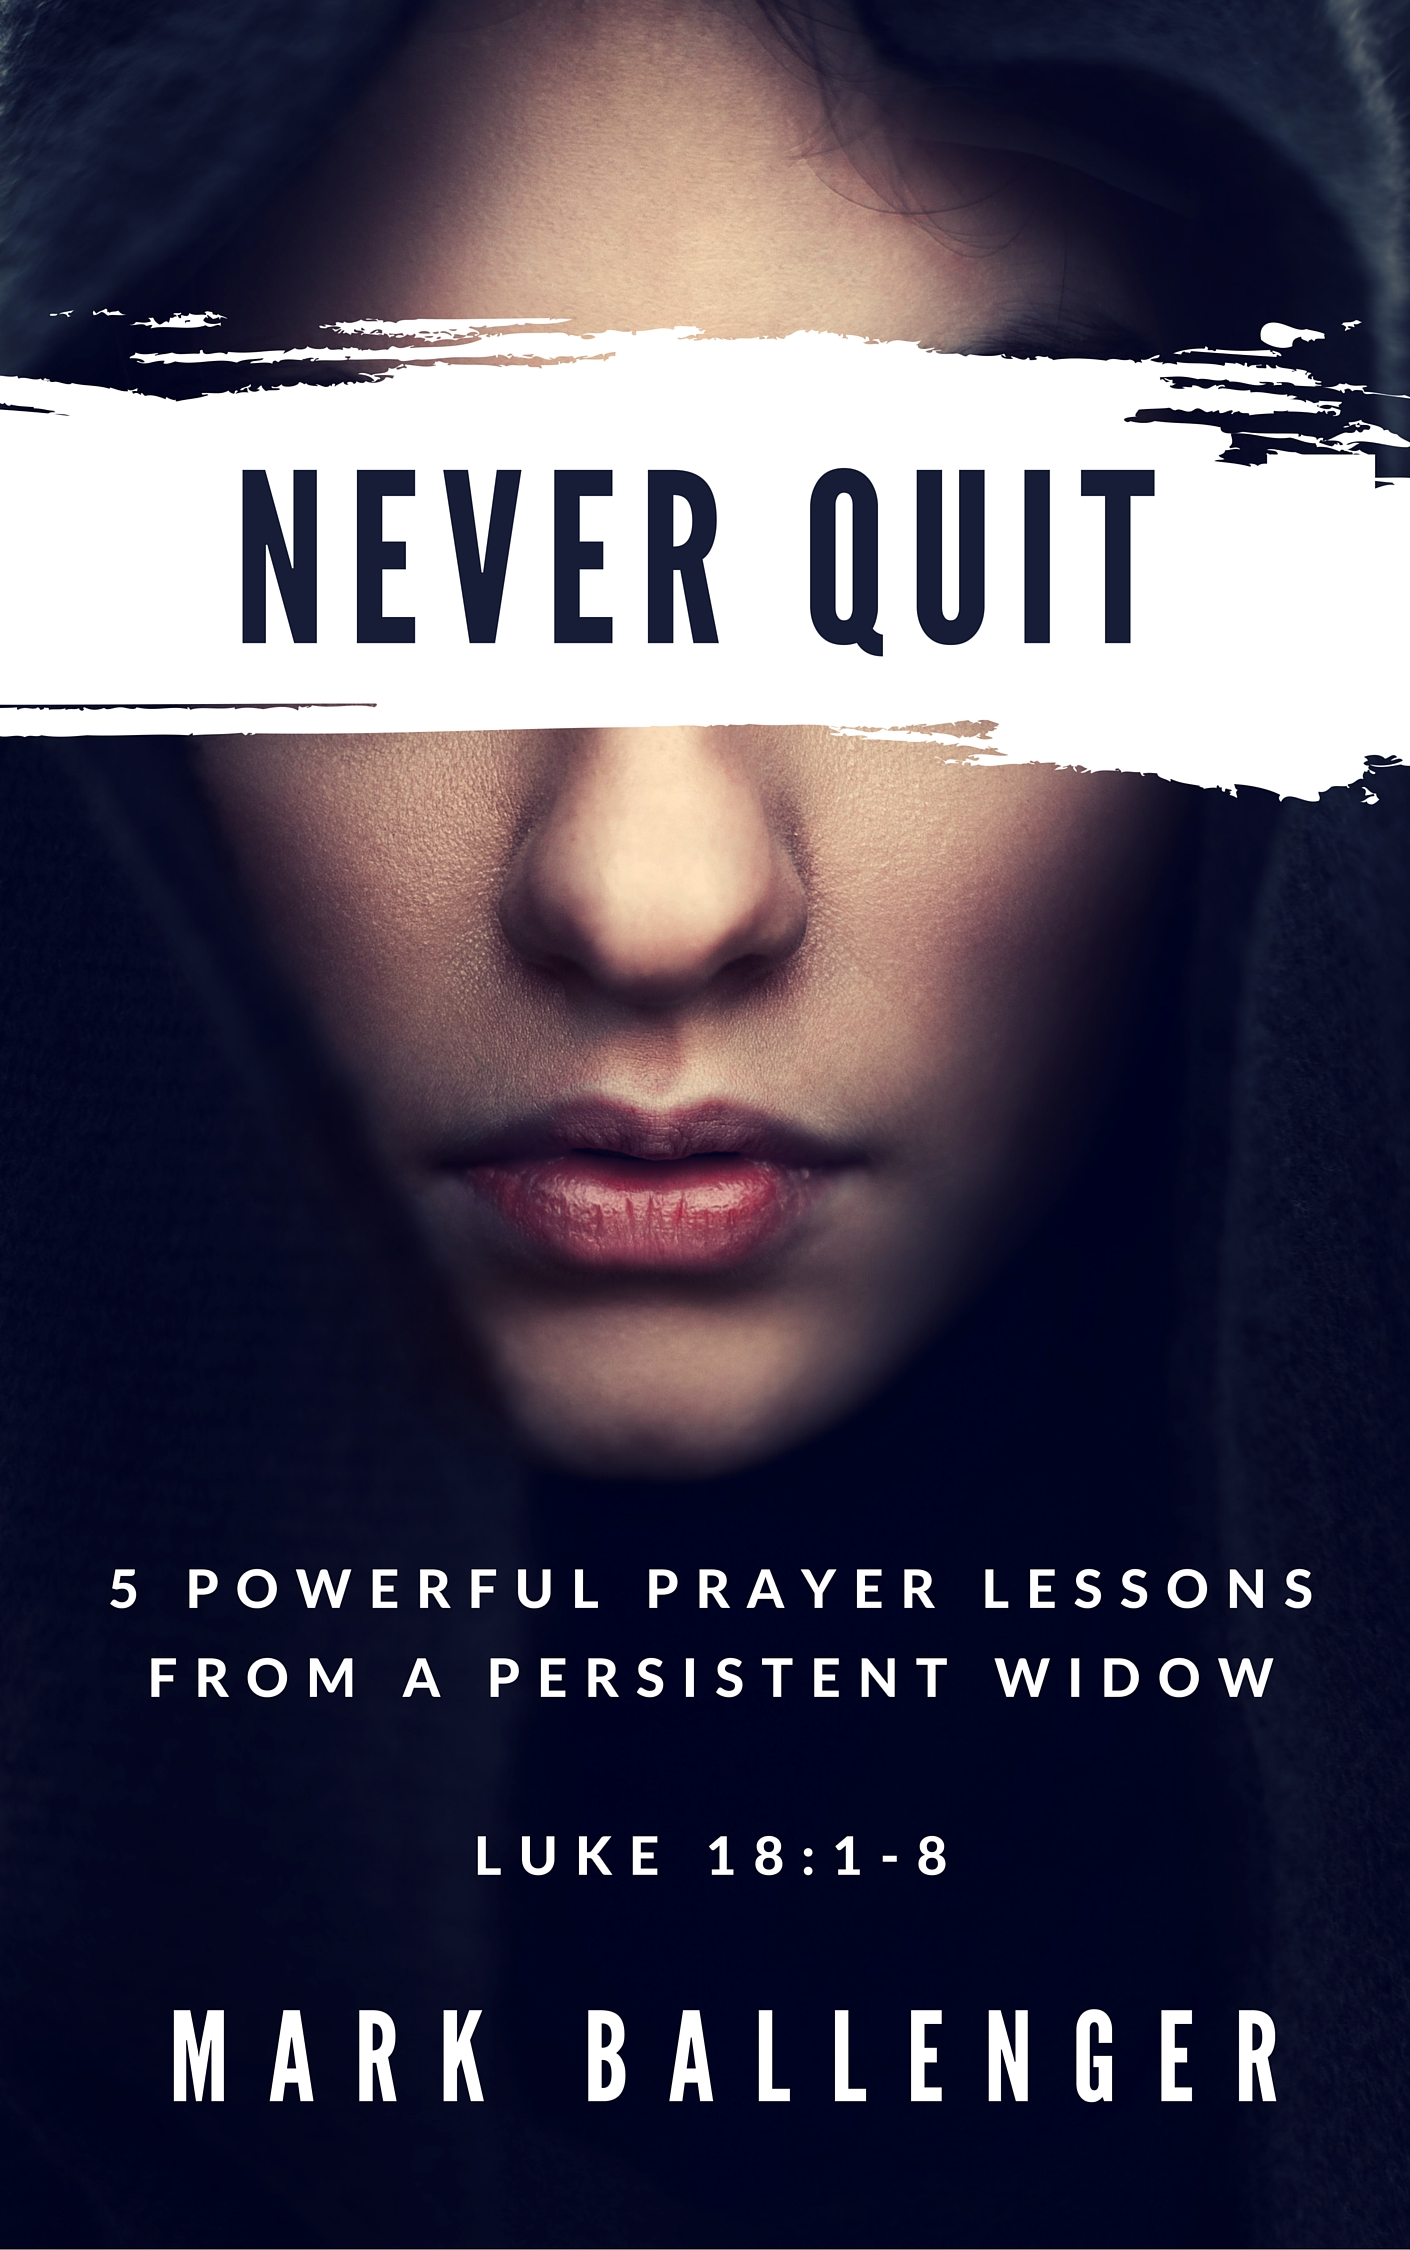 Never Quit by mark ballenger luke 18:1-8